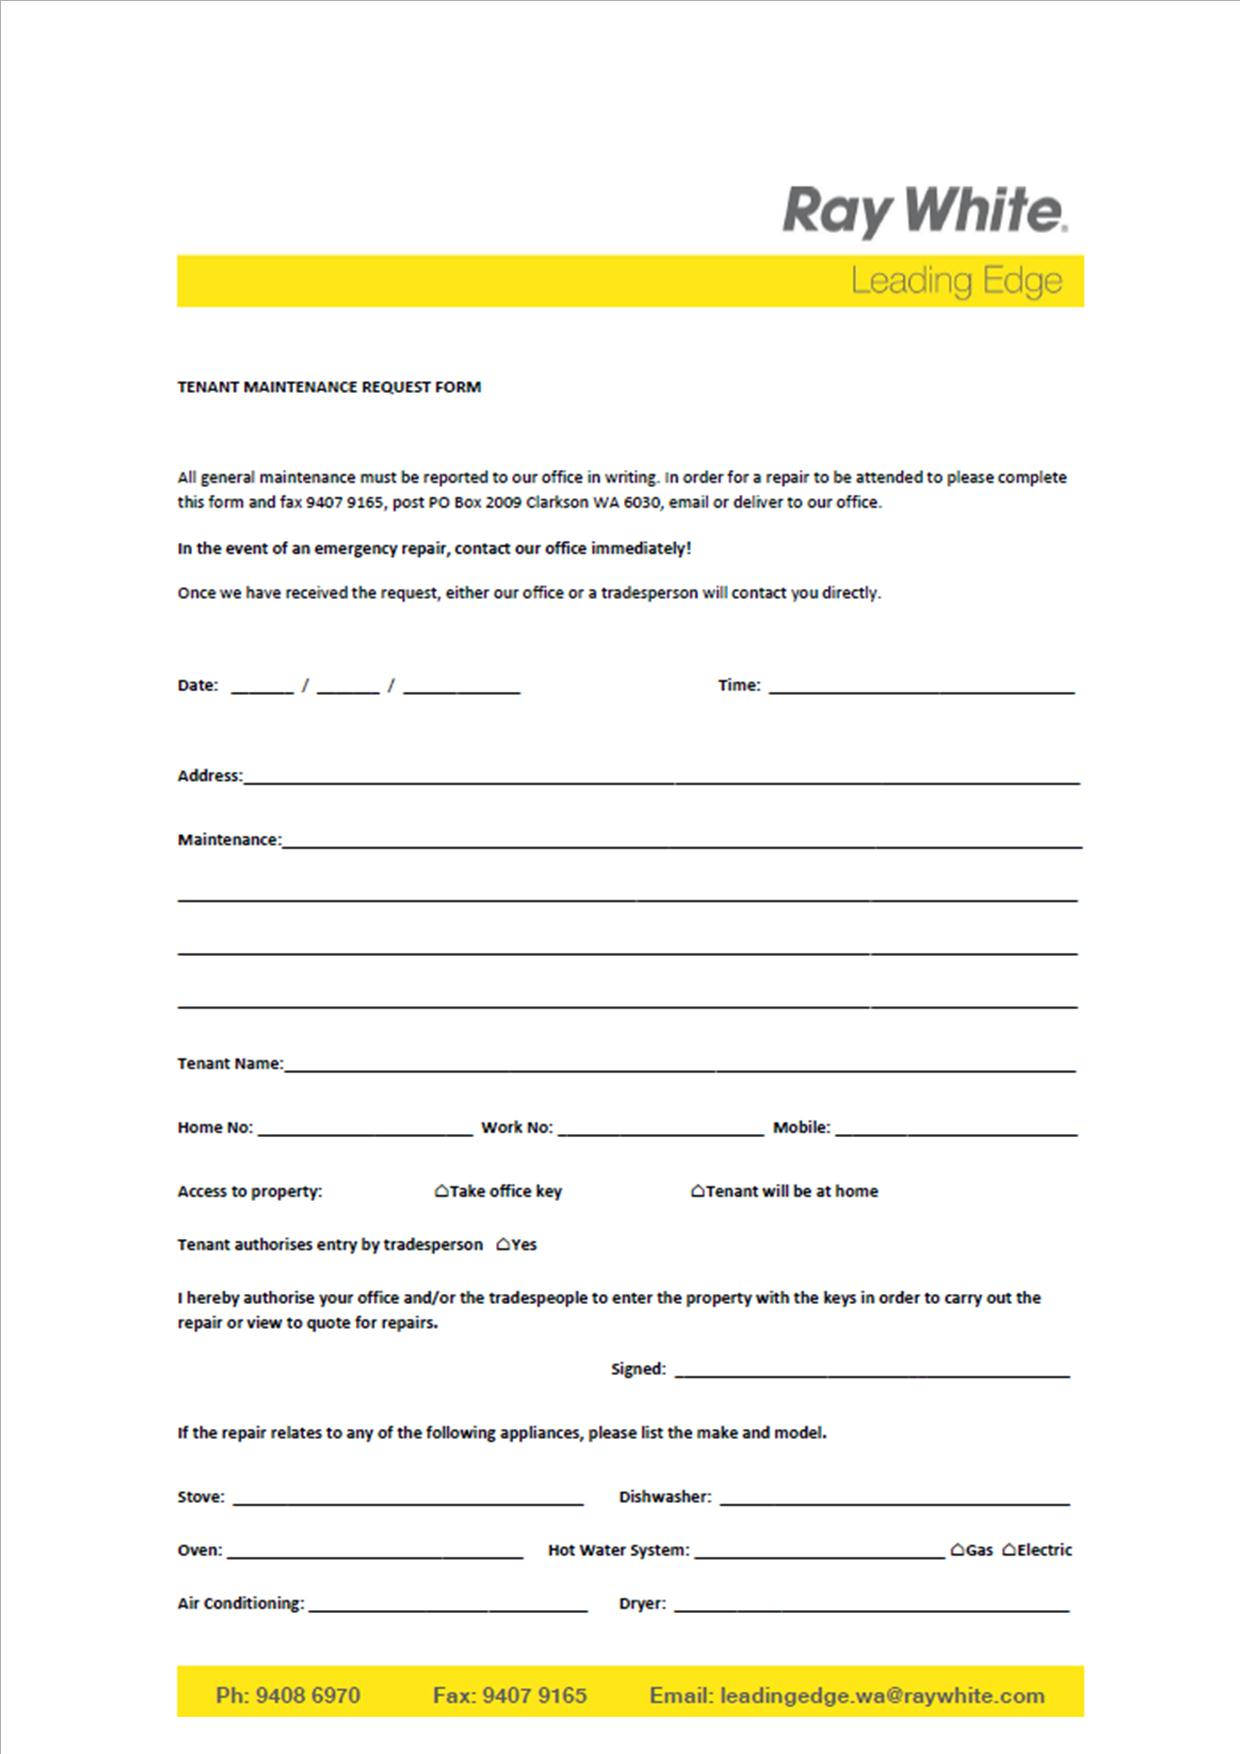 Real Estate Leading Edge WA Tenant Maintenance Request Form